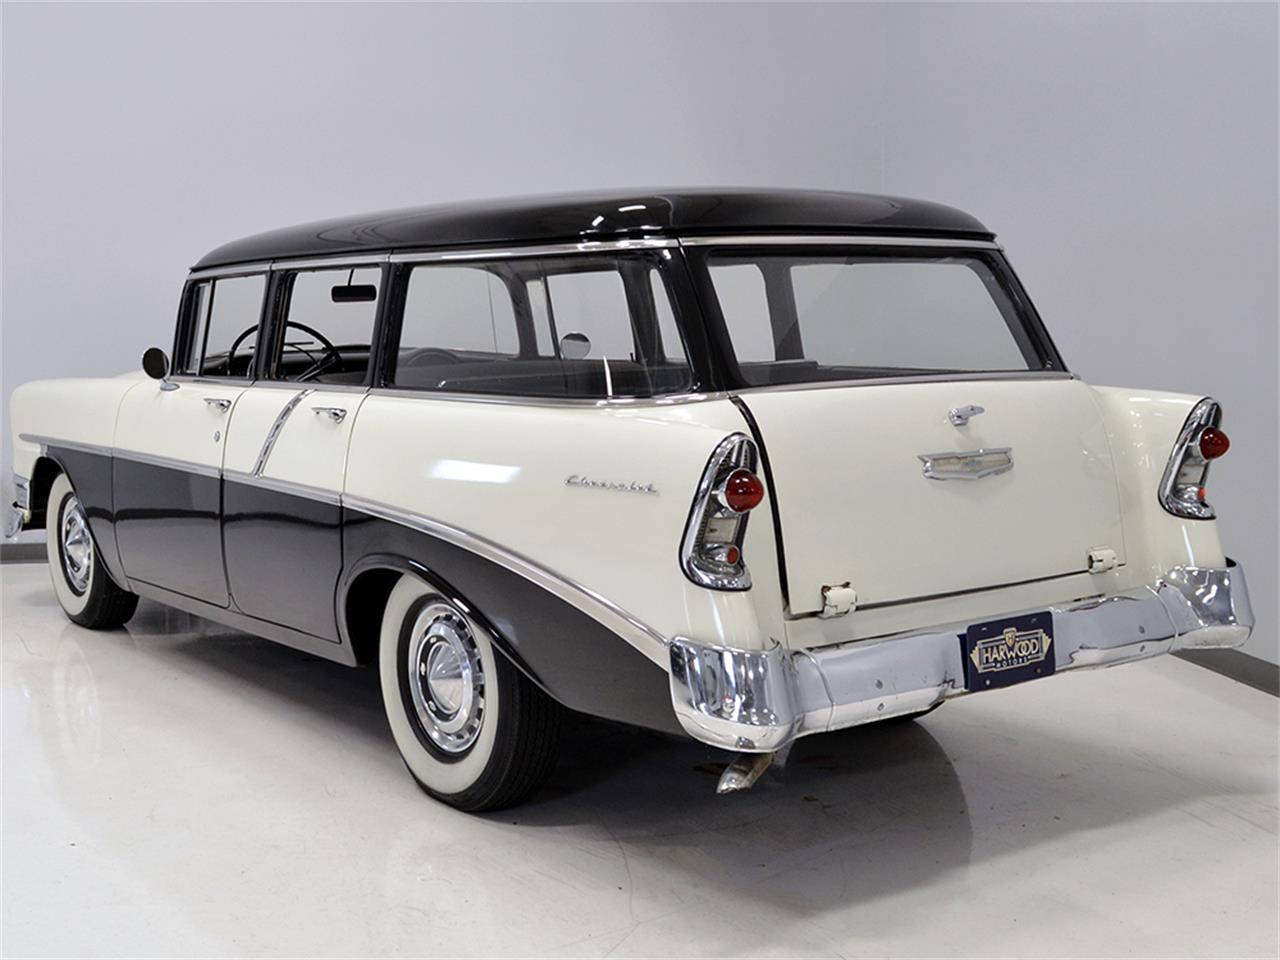 Large Picture of '56 Chevrolet 210 located in Macedonia Ohio - $24,900.00 Offered by Harwood Motors, LTD. - K2KS